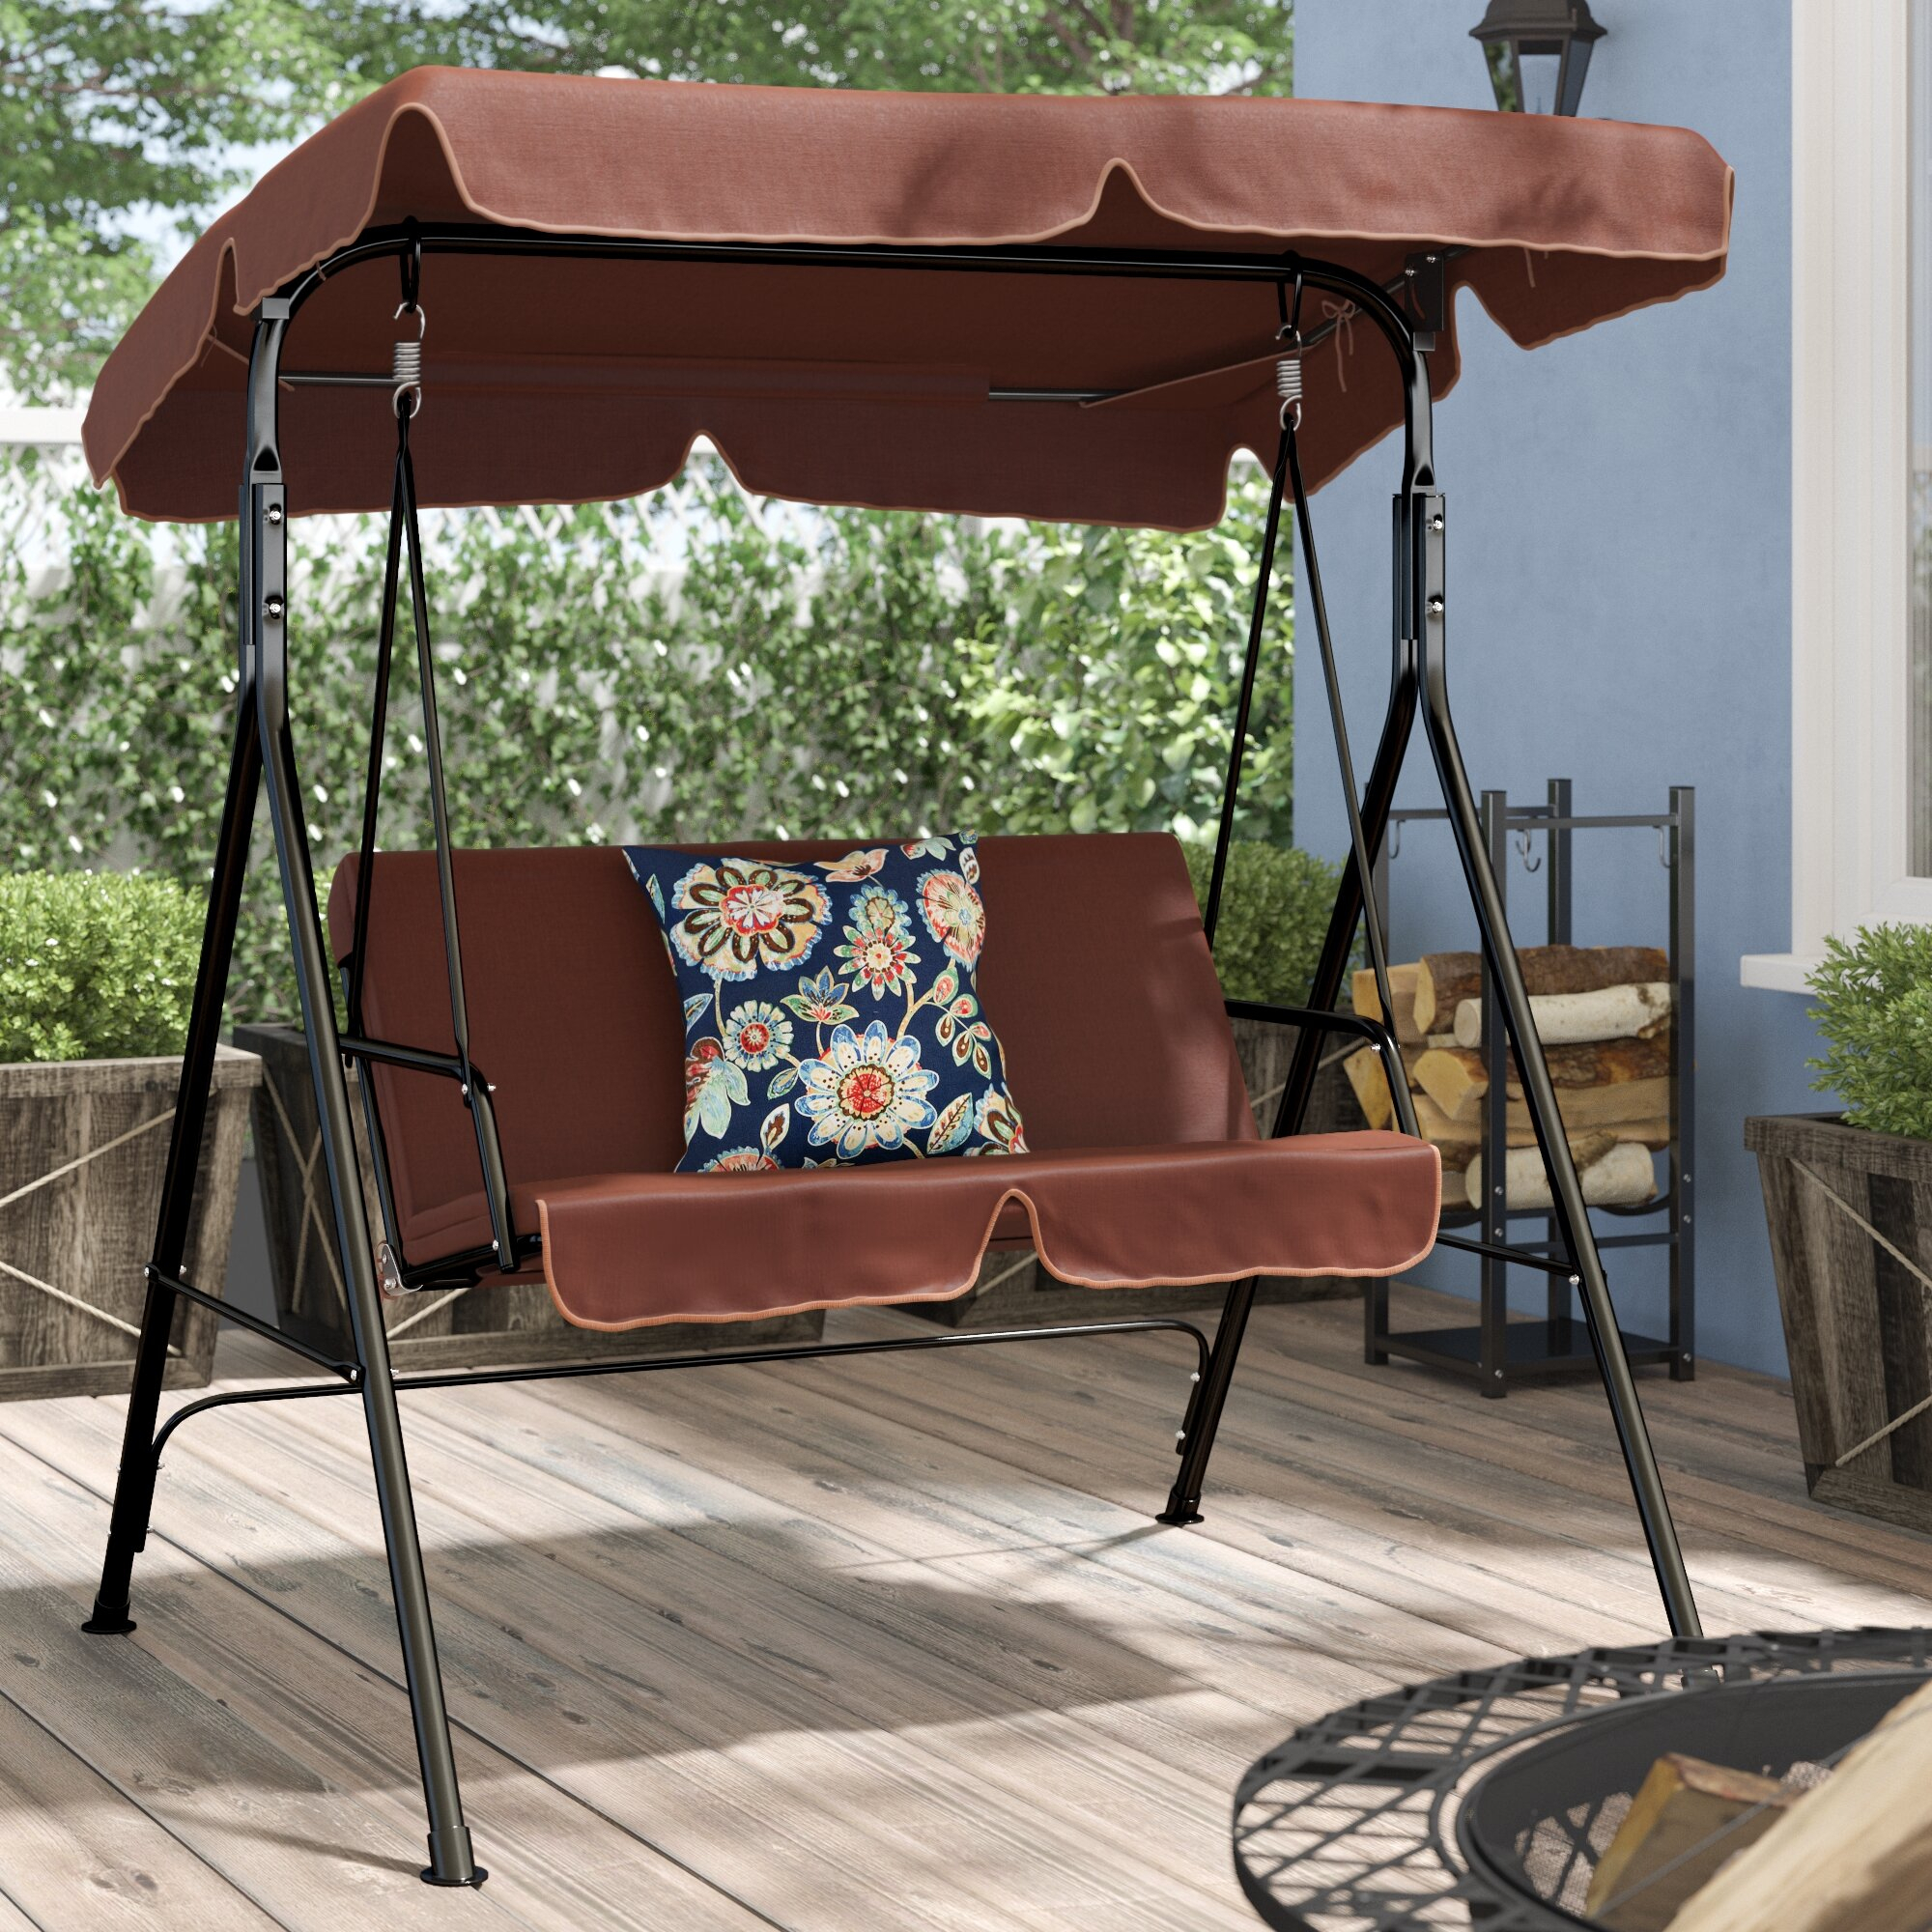 Featured Image of Patio Loveseat Canopy Hammock Porch Swings With Stand